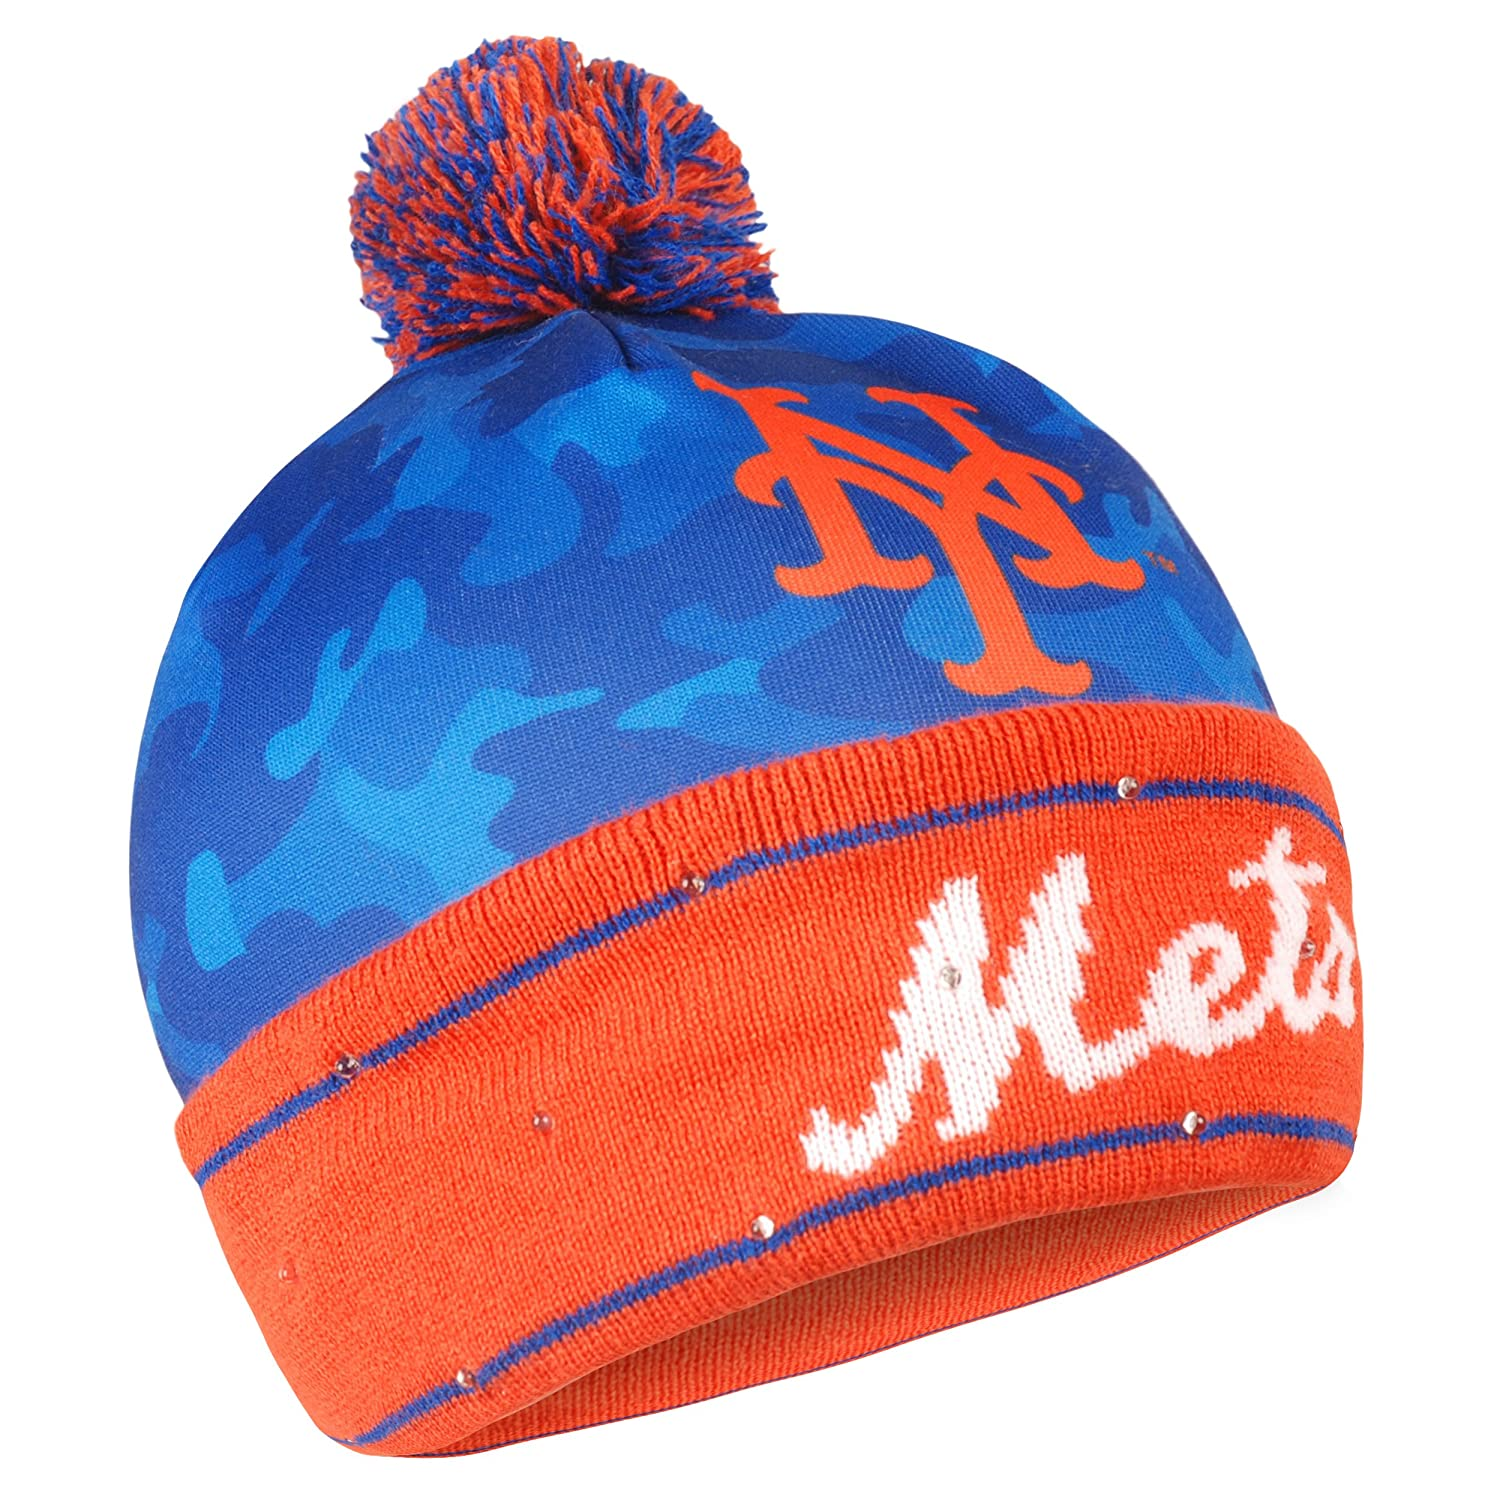 cheap for discount c231f 507dc Amazon.com   Forever Collectibles MLB New York Mets Camo Light Up Knit Hat    Sports   Outdoors